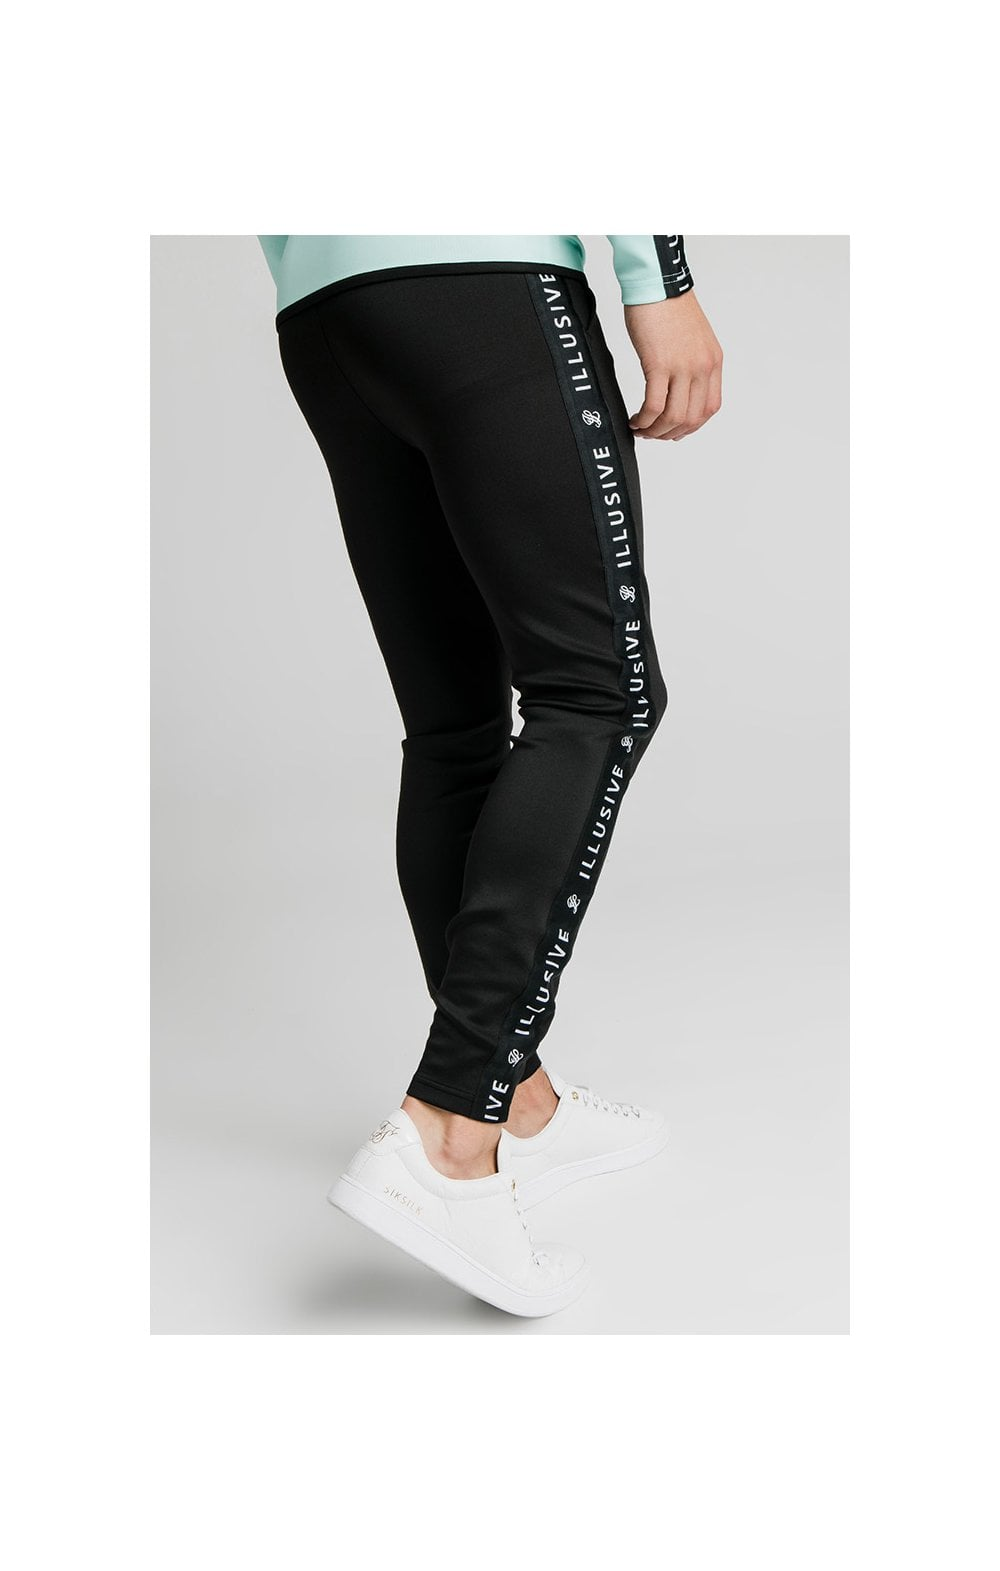 Load image into Gallery viewer, Illusive London Tape Pants - Black (2)